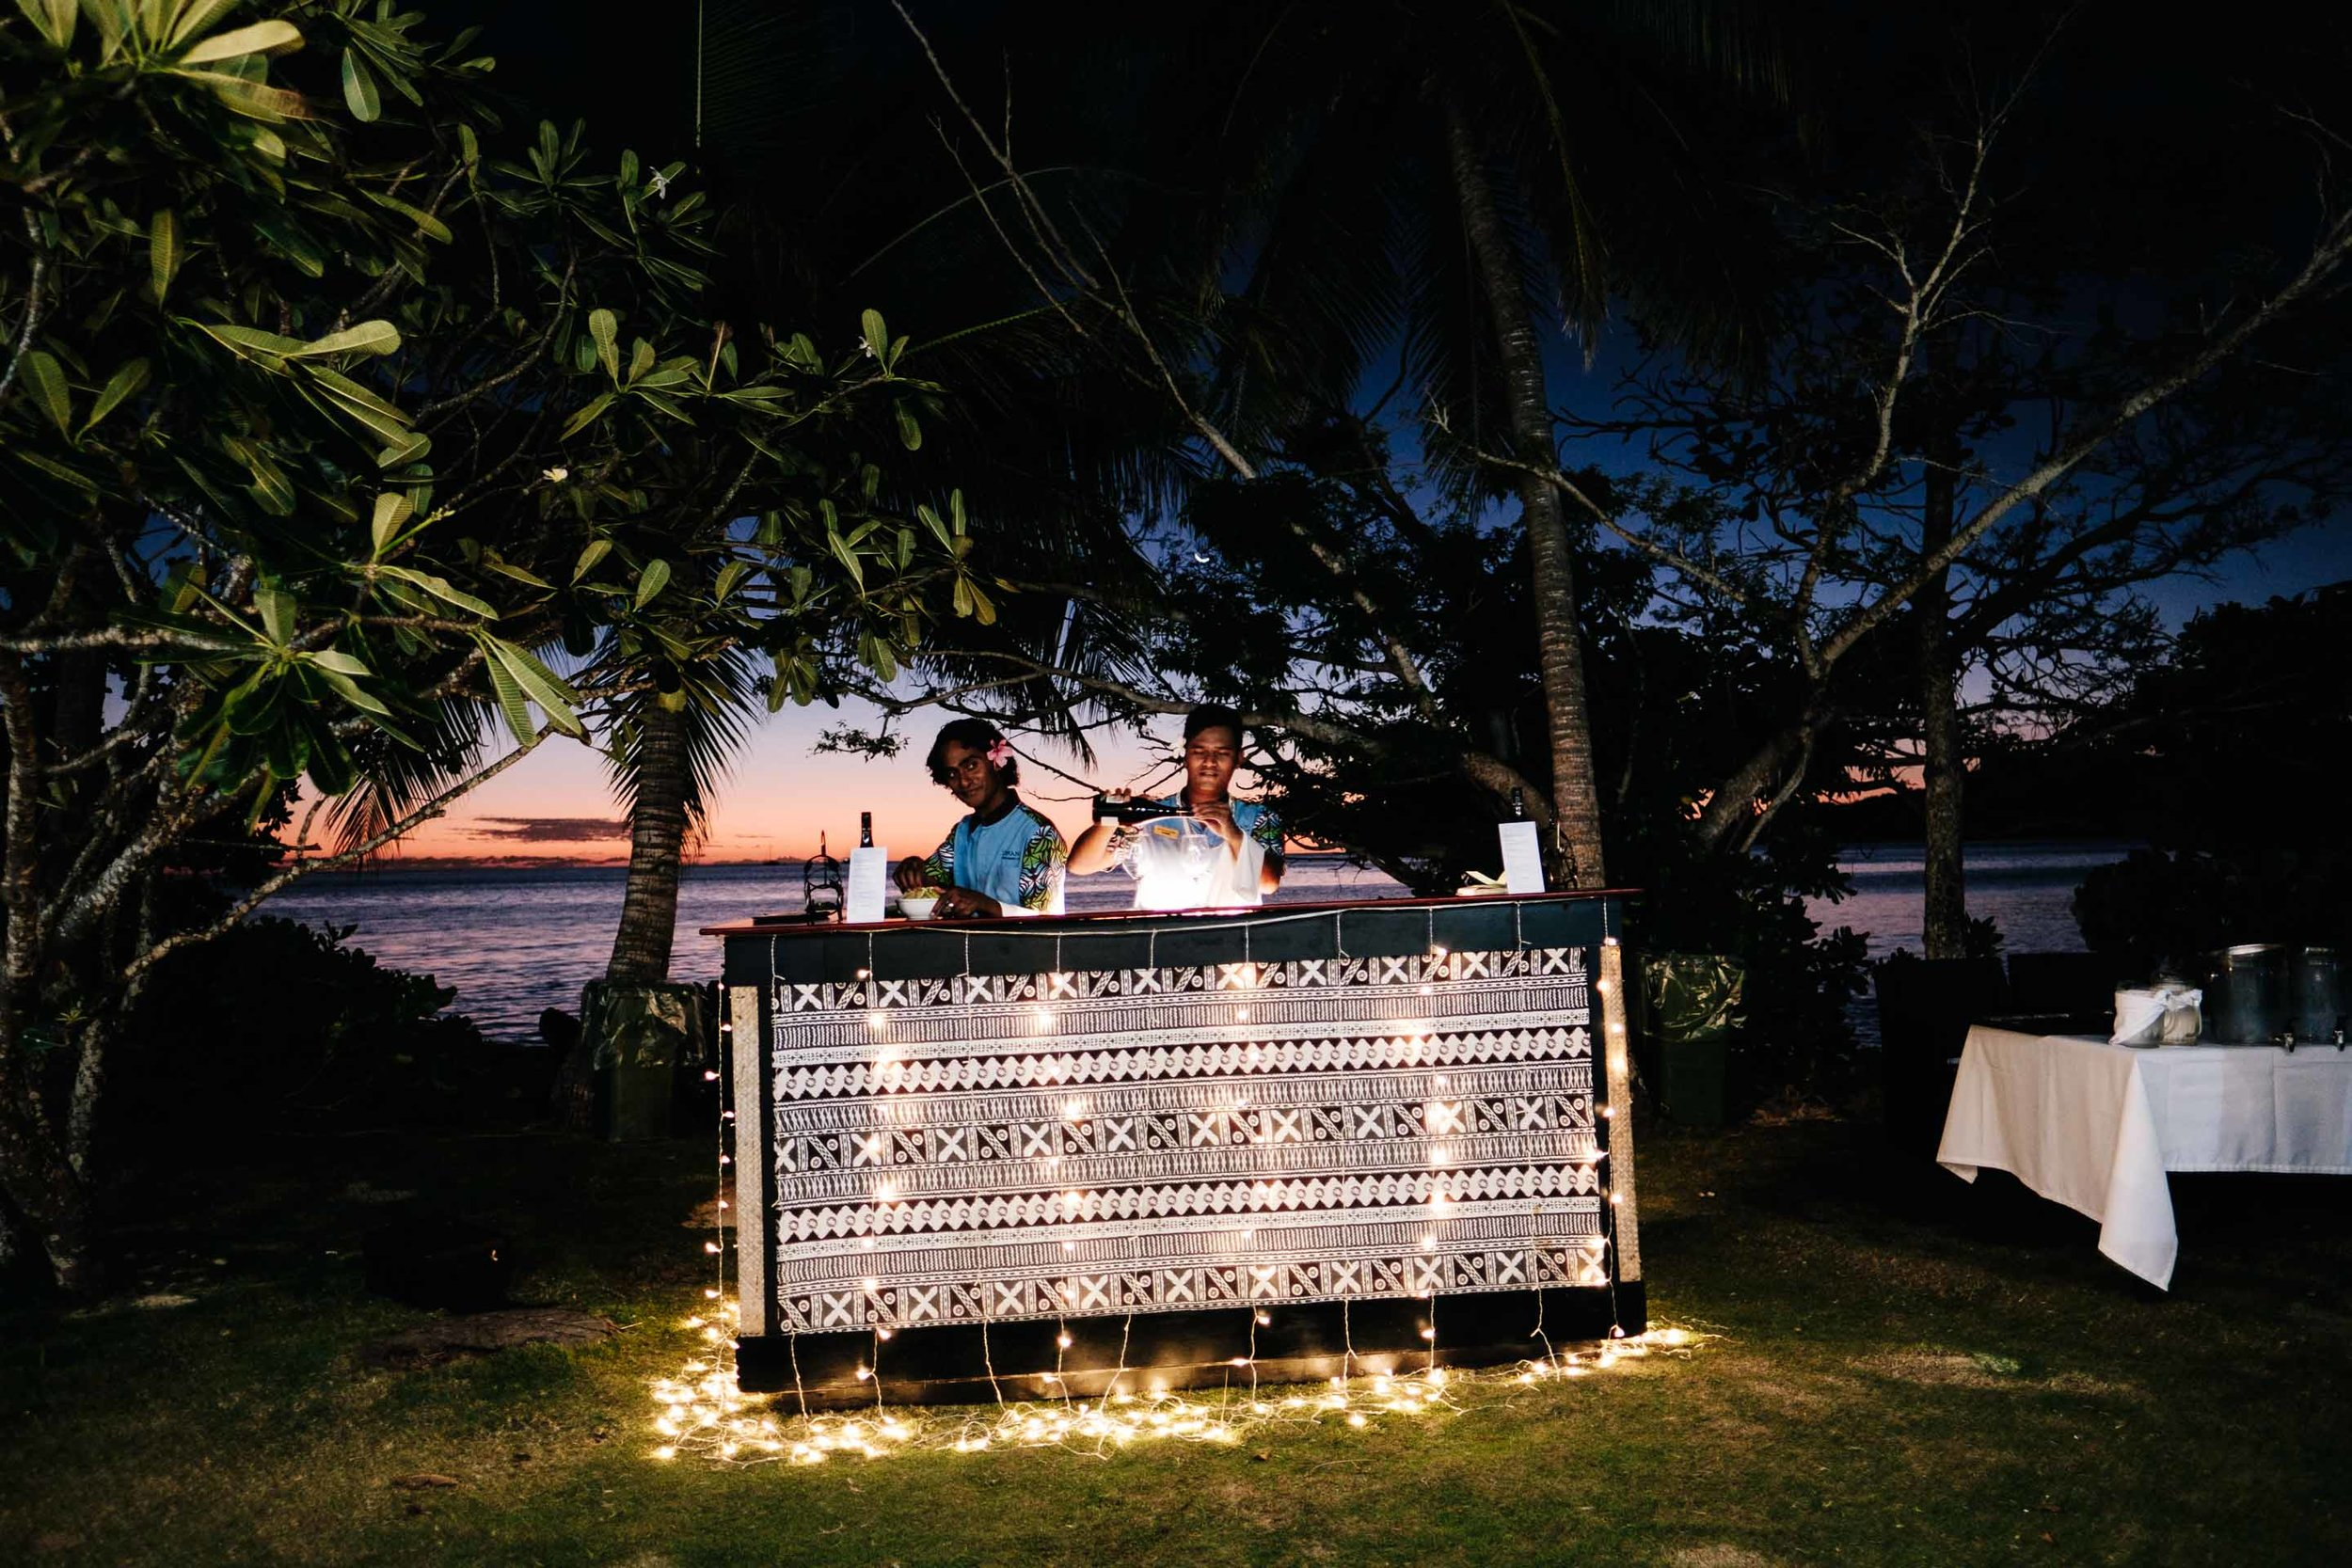 the bar staff mixing drinks behind the outdoor bar with traditional tapa print and surrounded by fairy lights